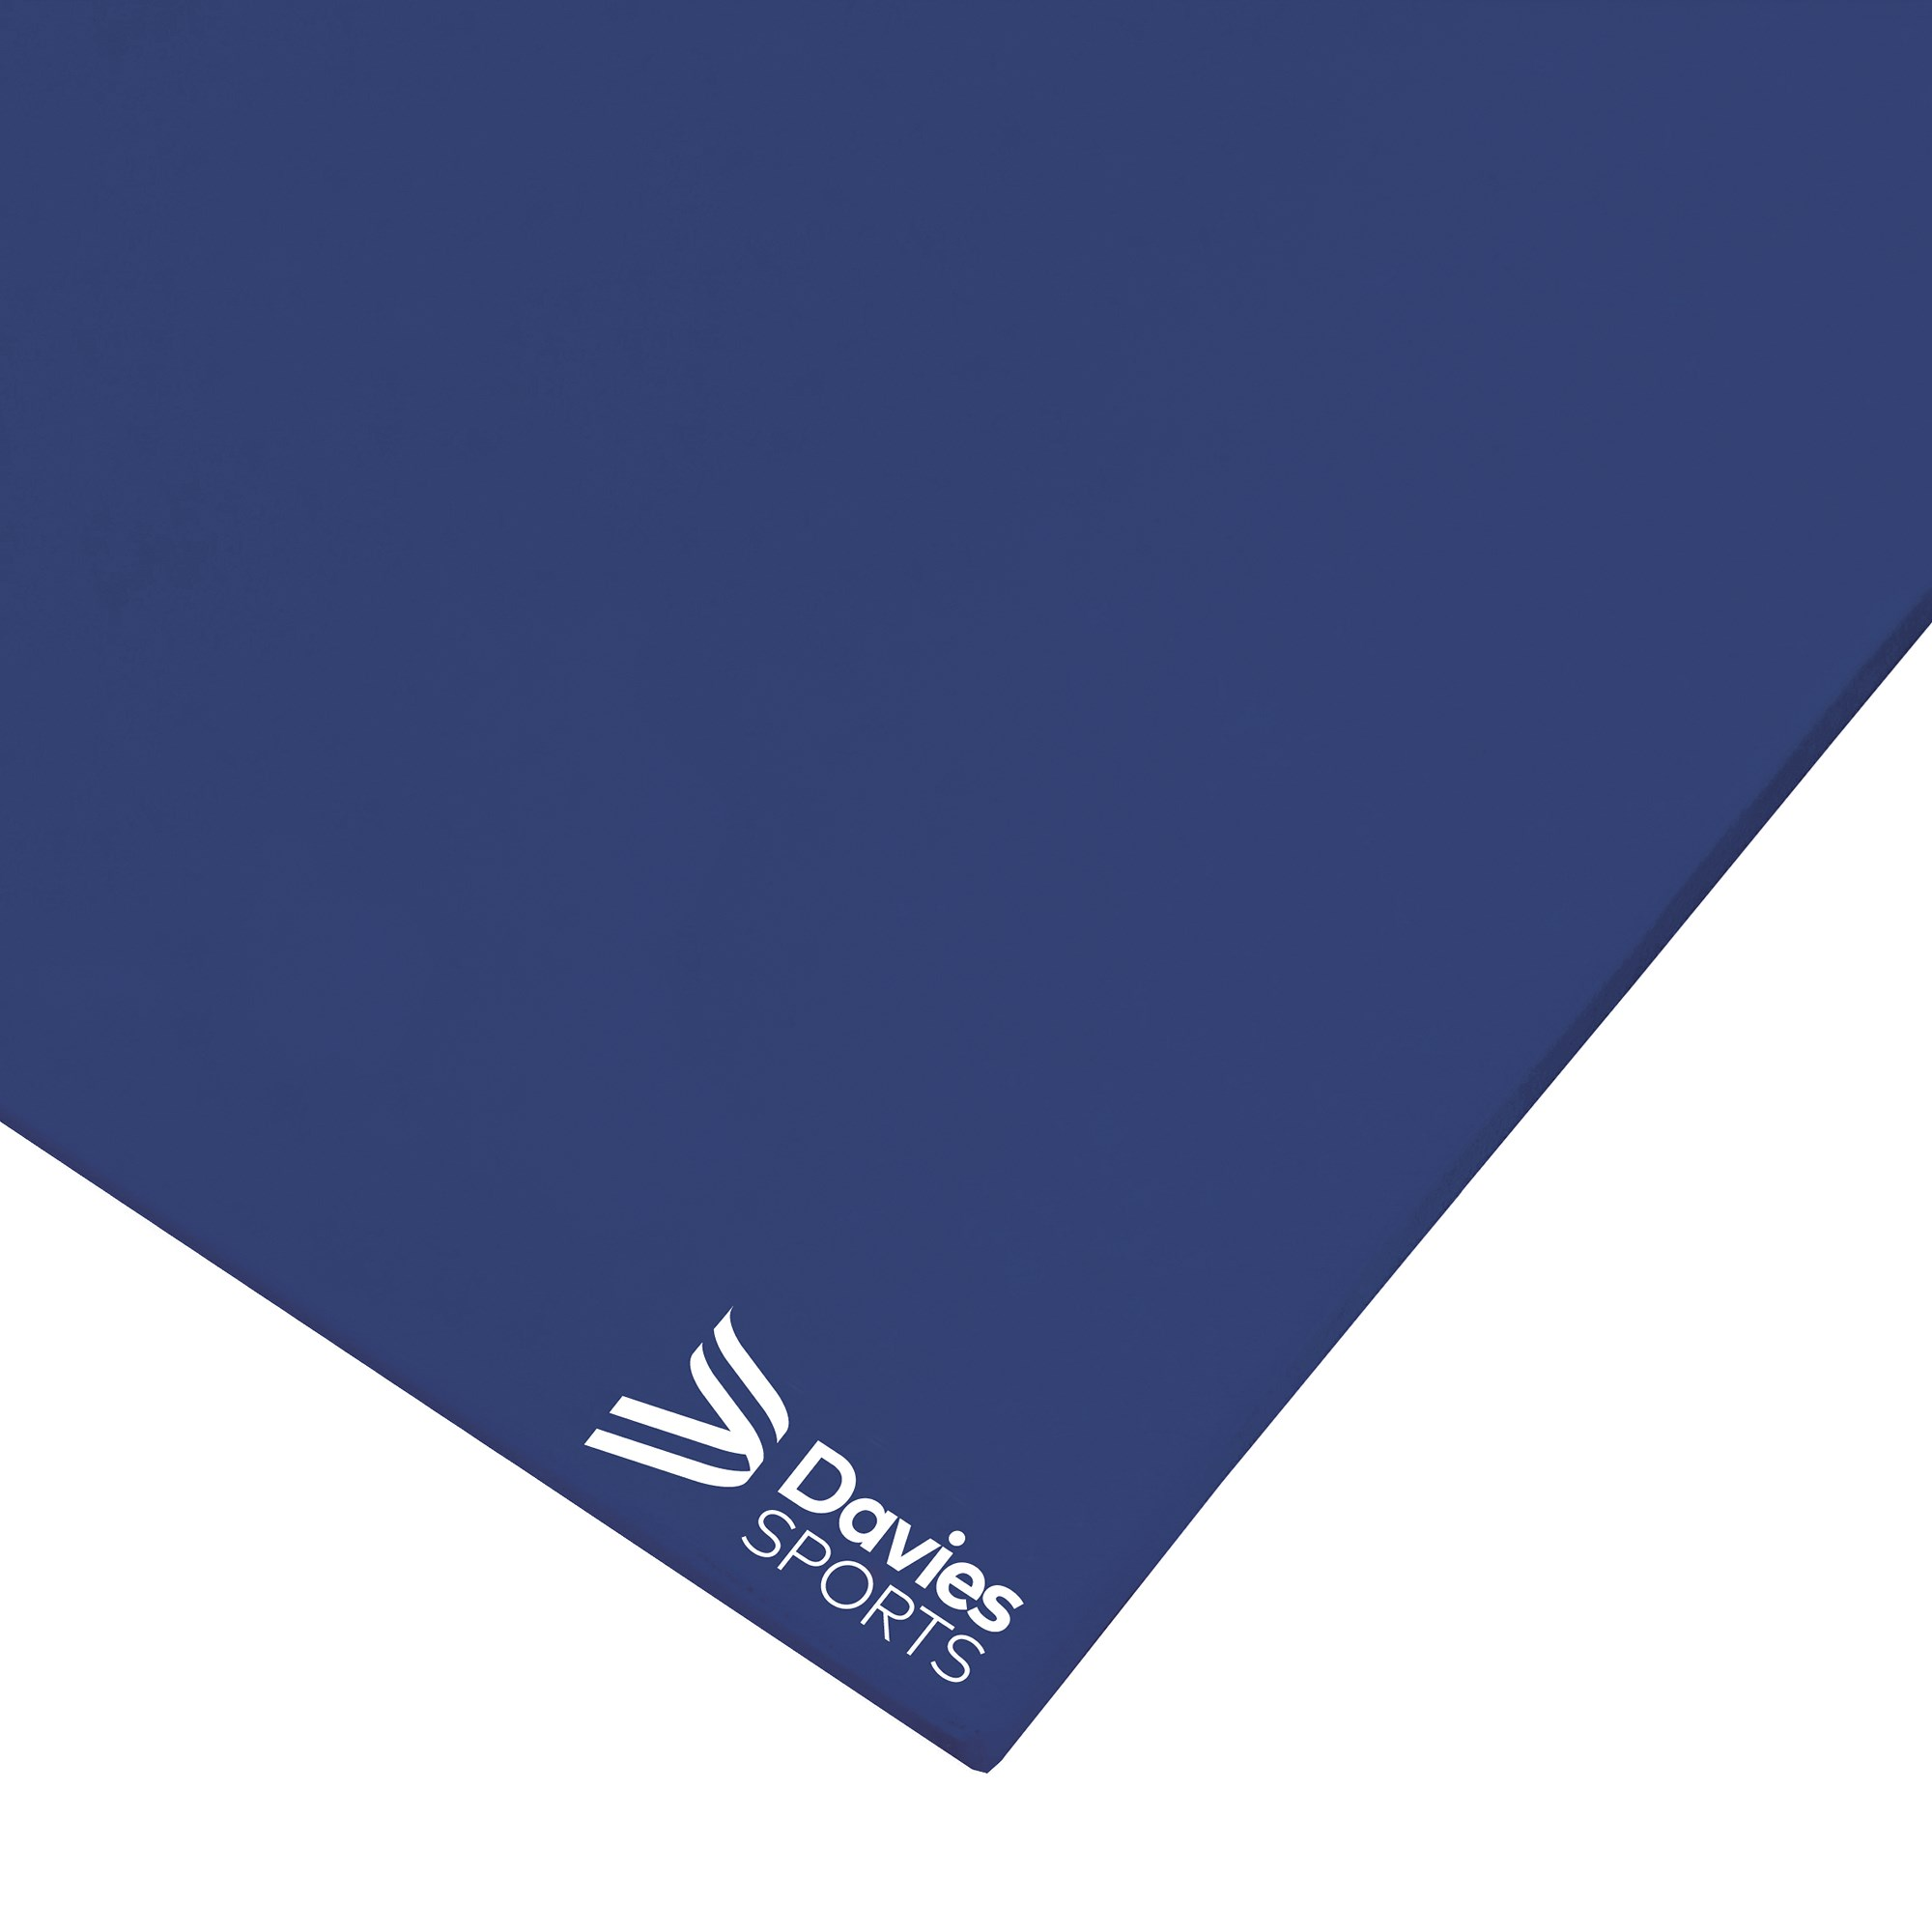 Davies Sports Lightweight Gym Mat Standard Blue - 1.83m x 1.22m x 32mm